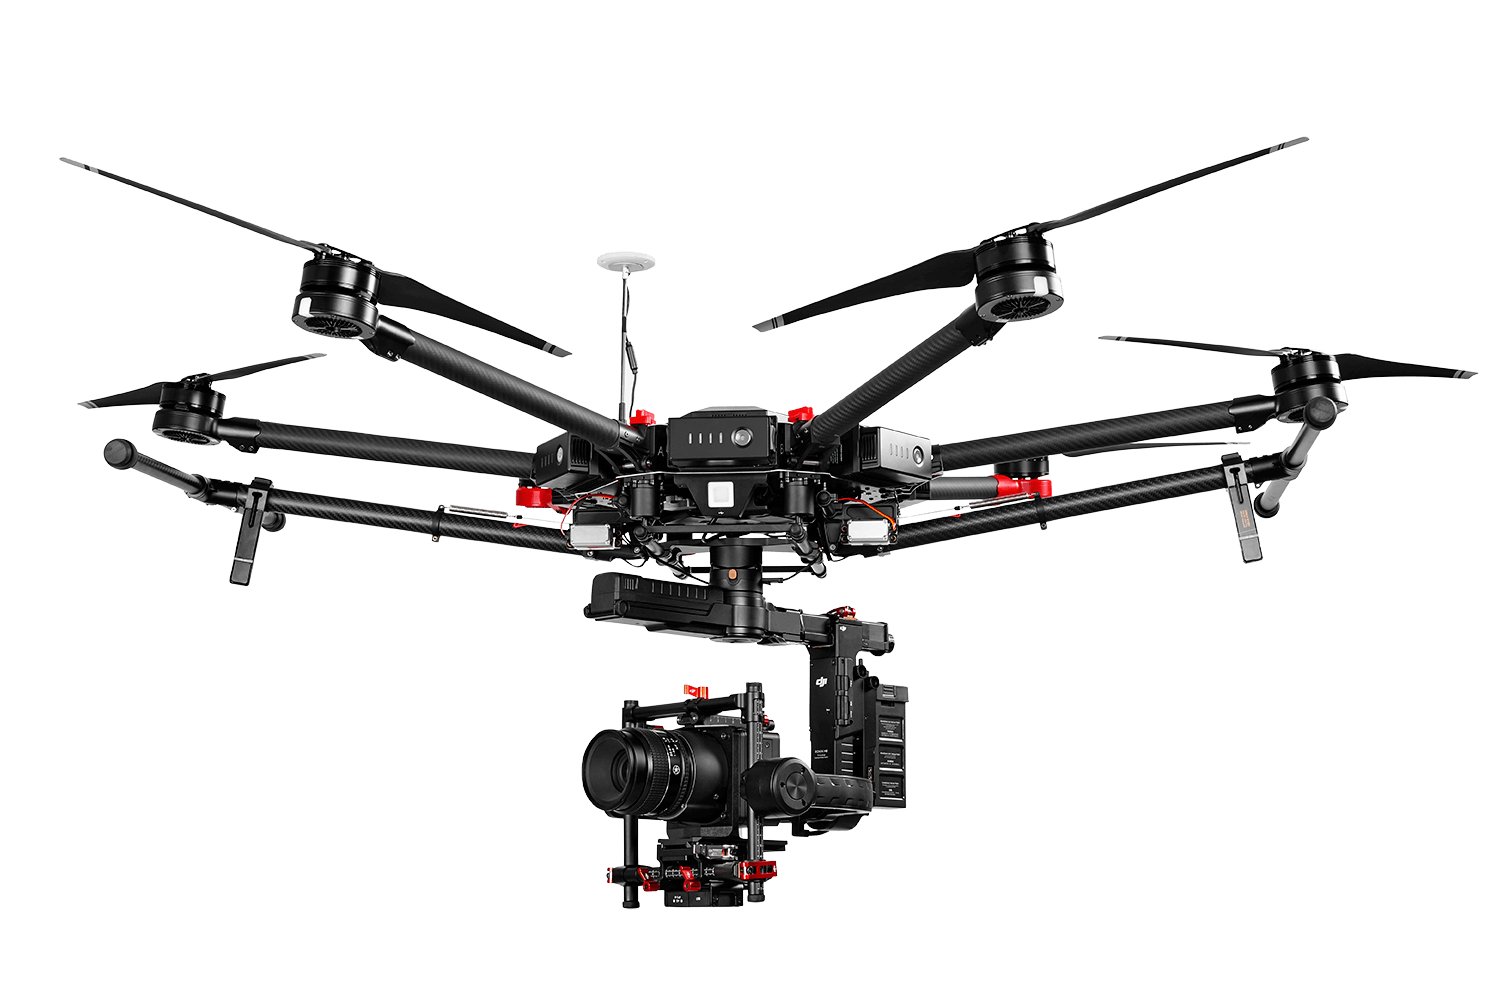 Phase One Industrial Adds Support For Dji Drones To Its